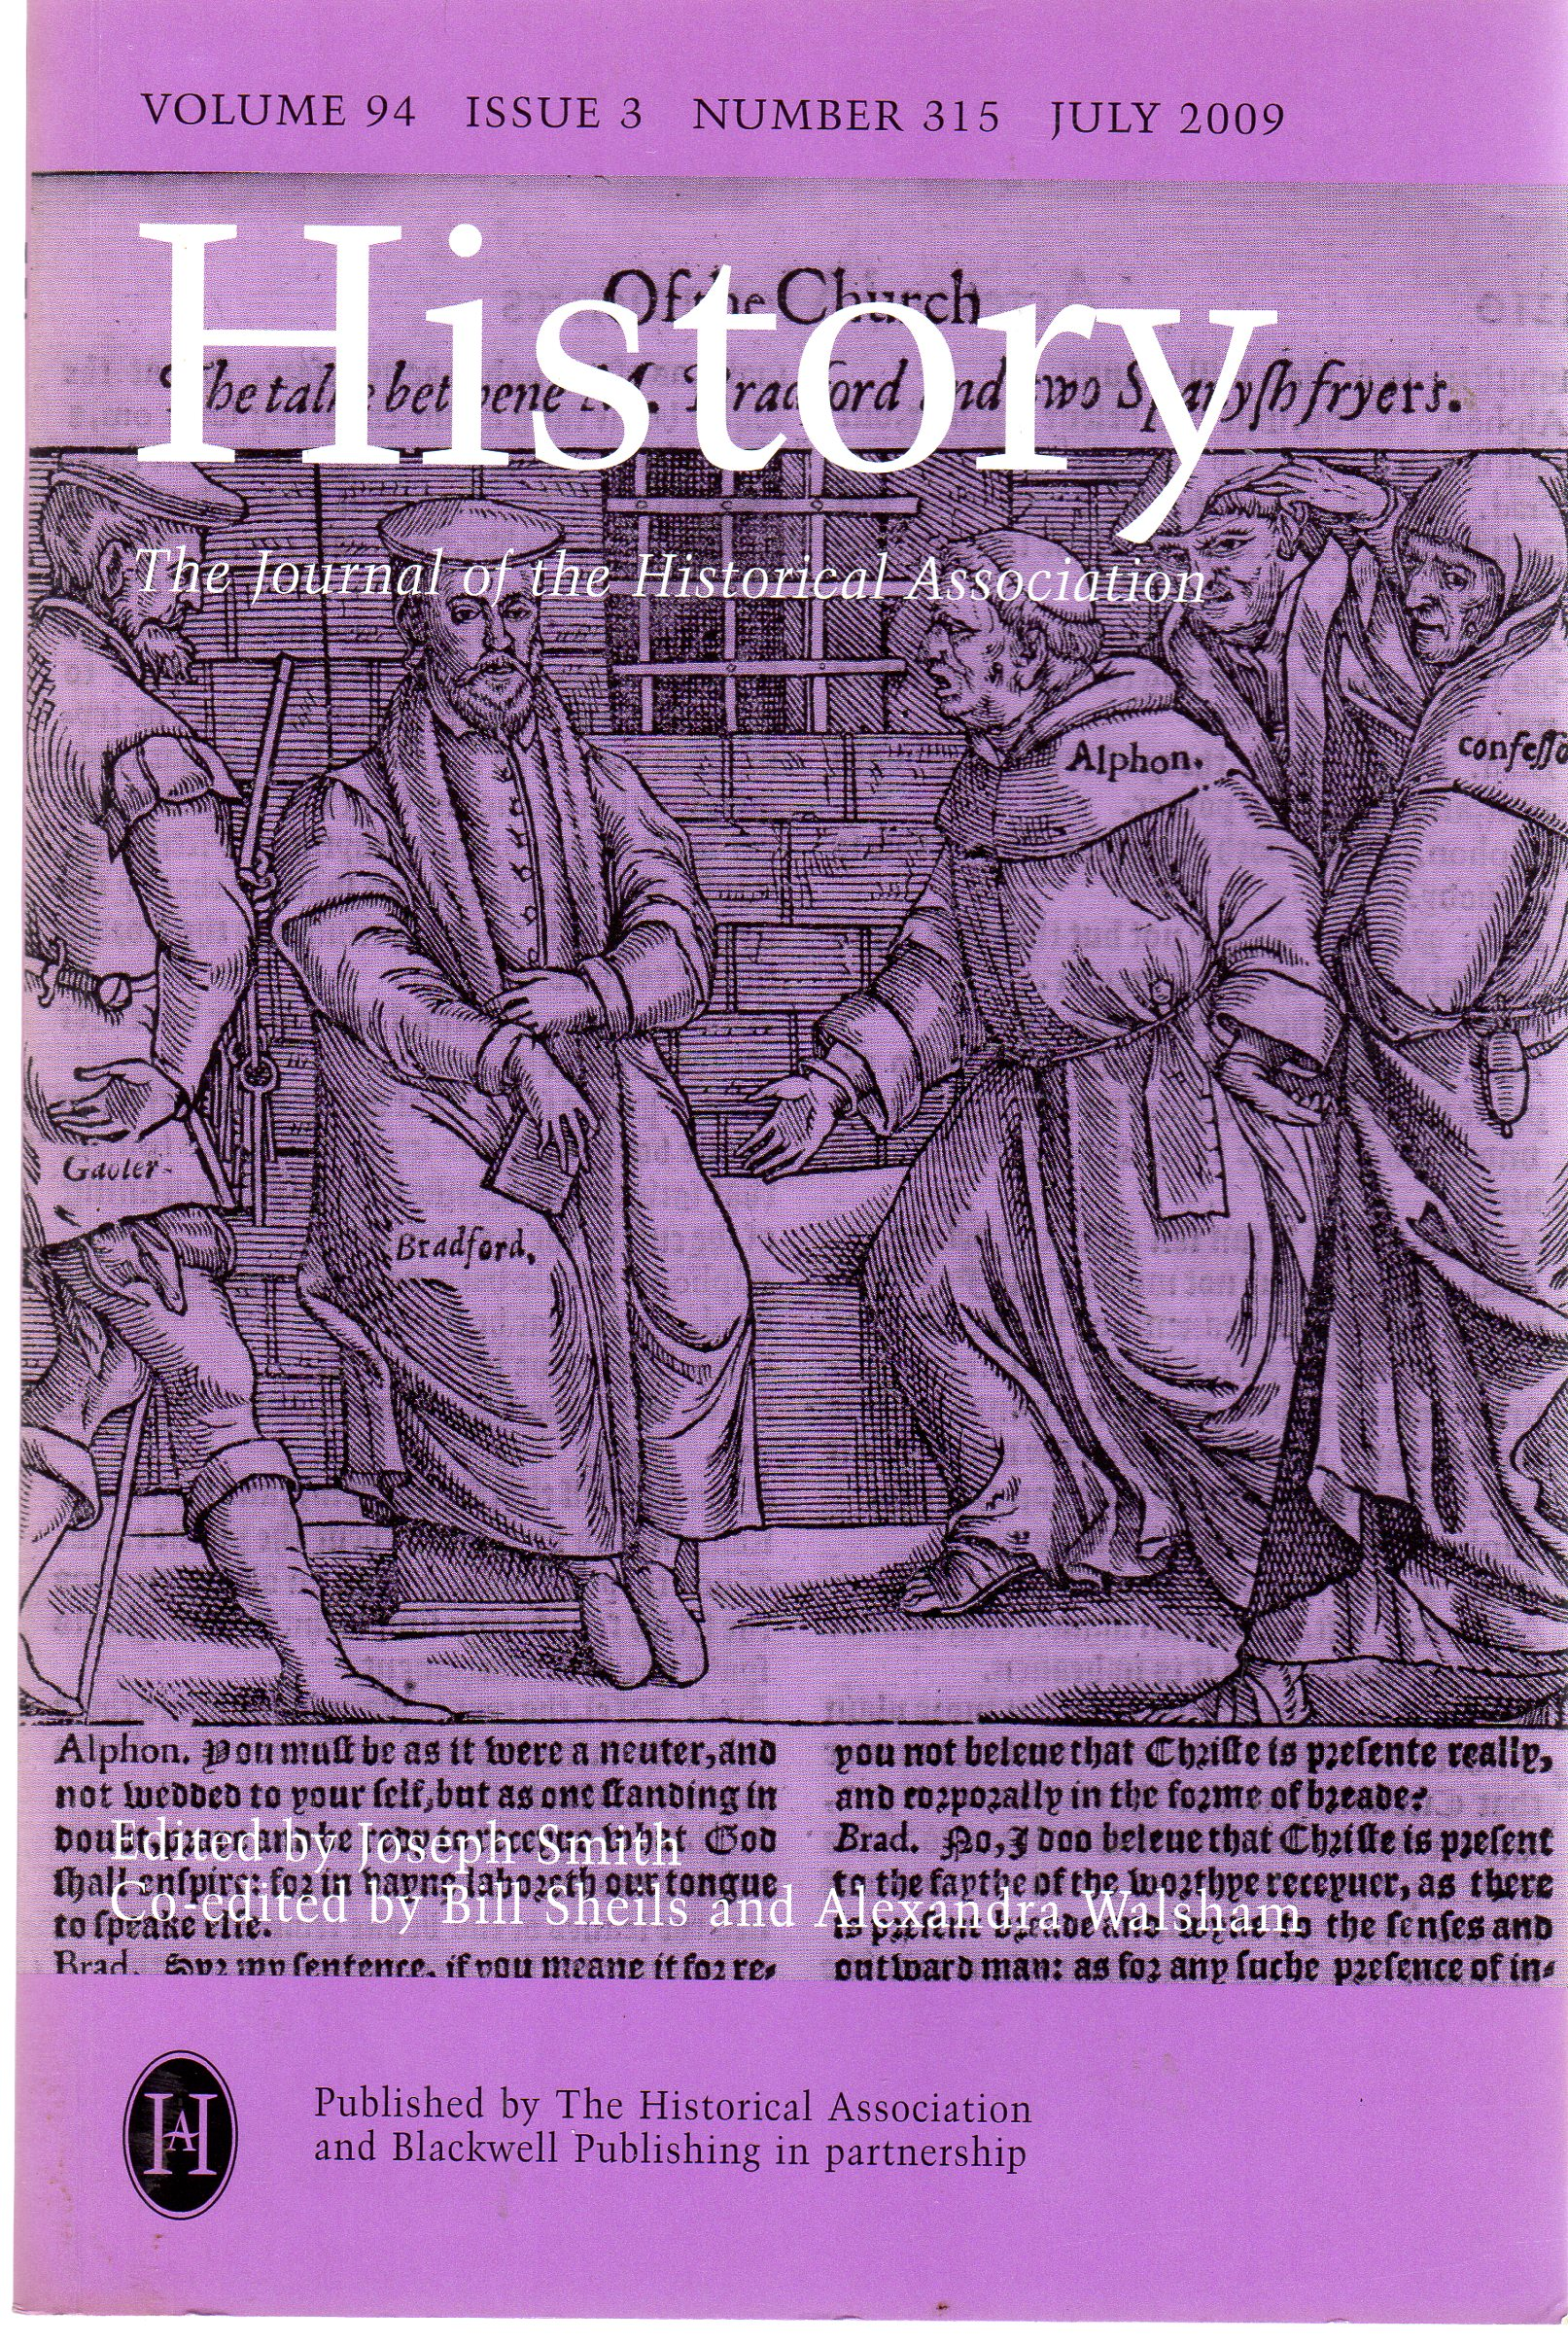 Image for History : The Journal of the Historical Association - Volume 94 Issue 3 Number 315 July 2009